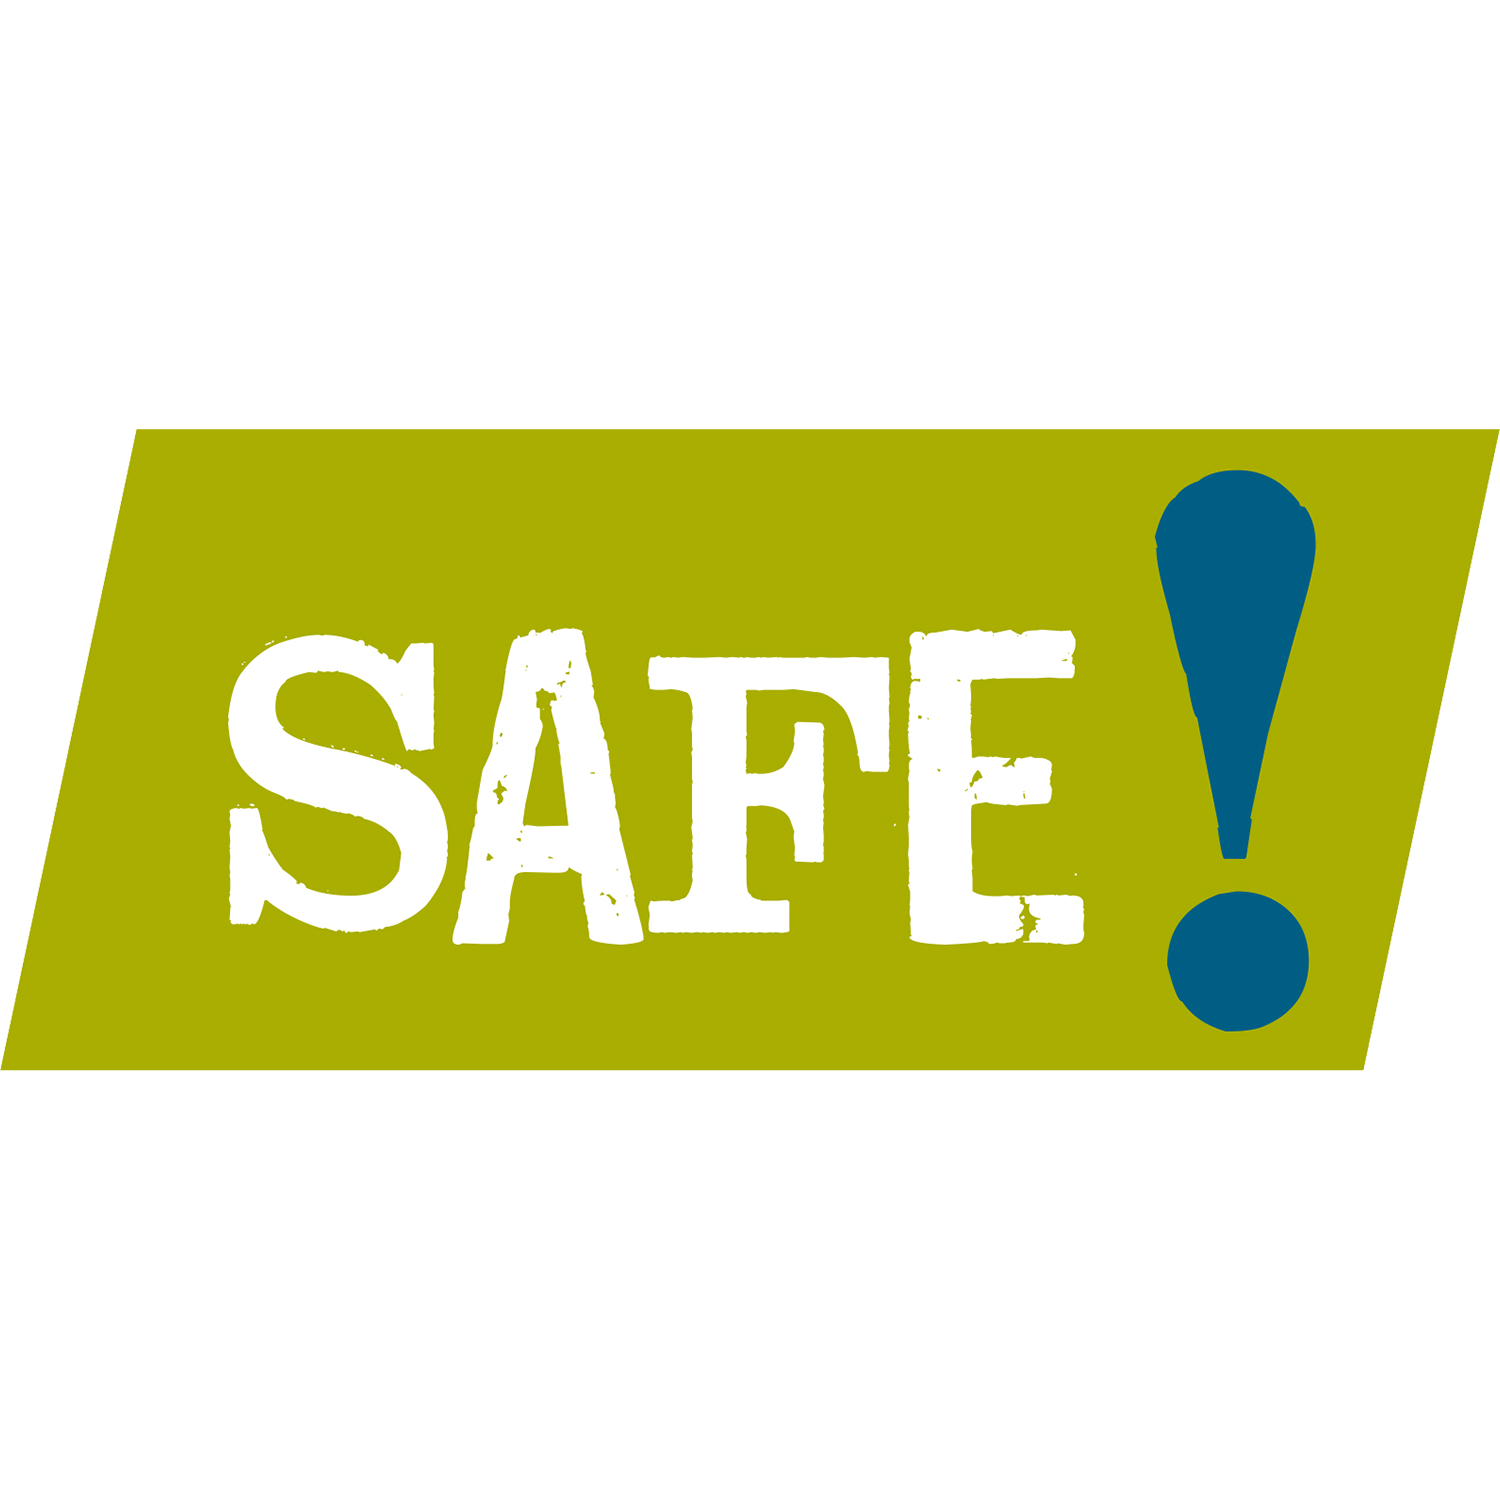 SAFE! Issues Affecting Today's Teens and How We Can Help